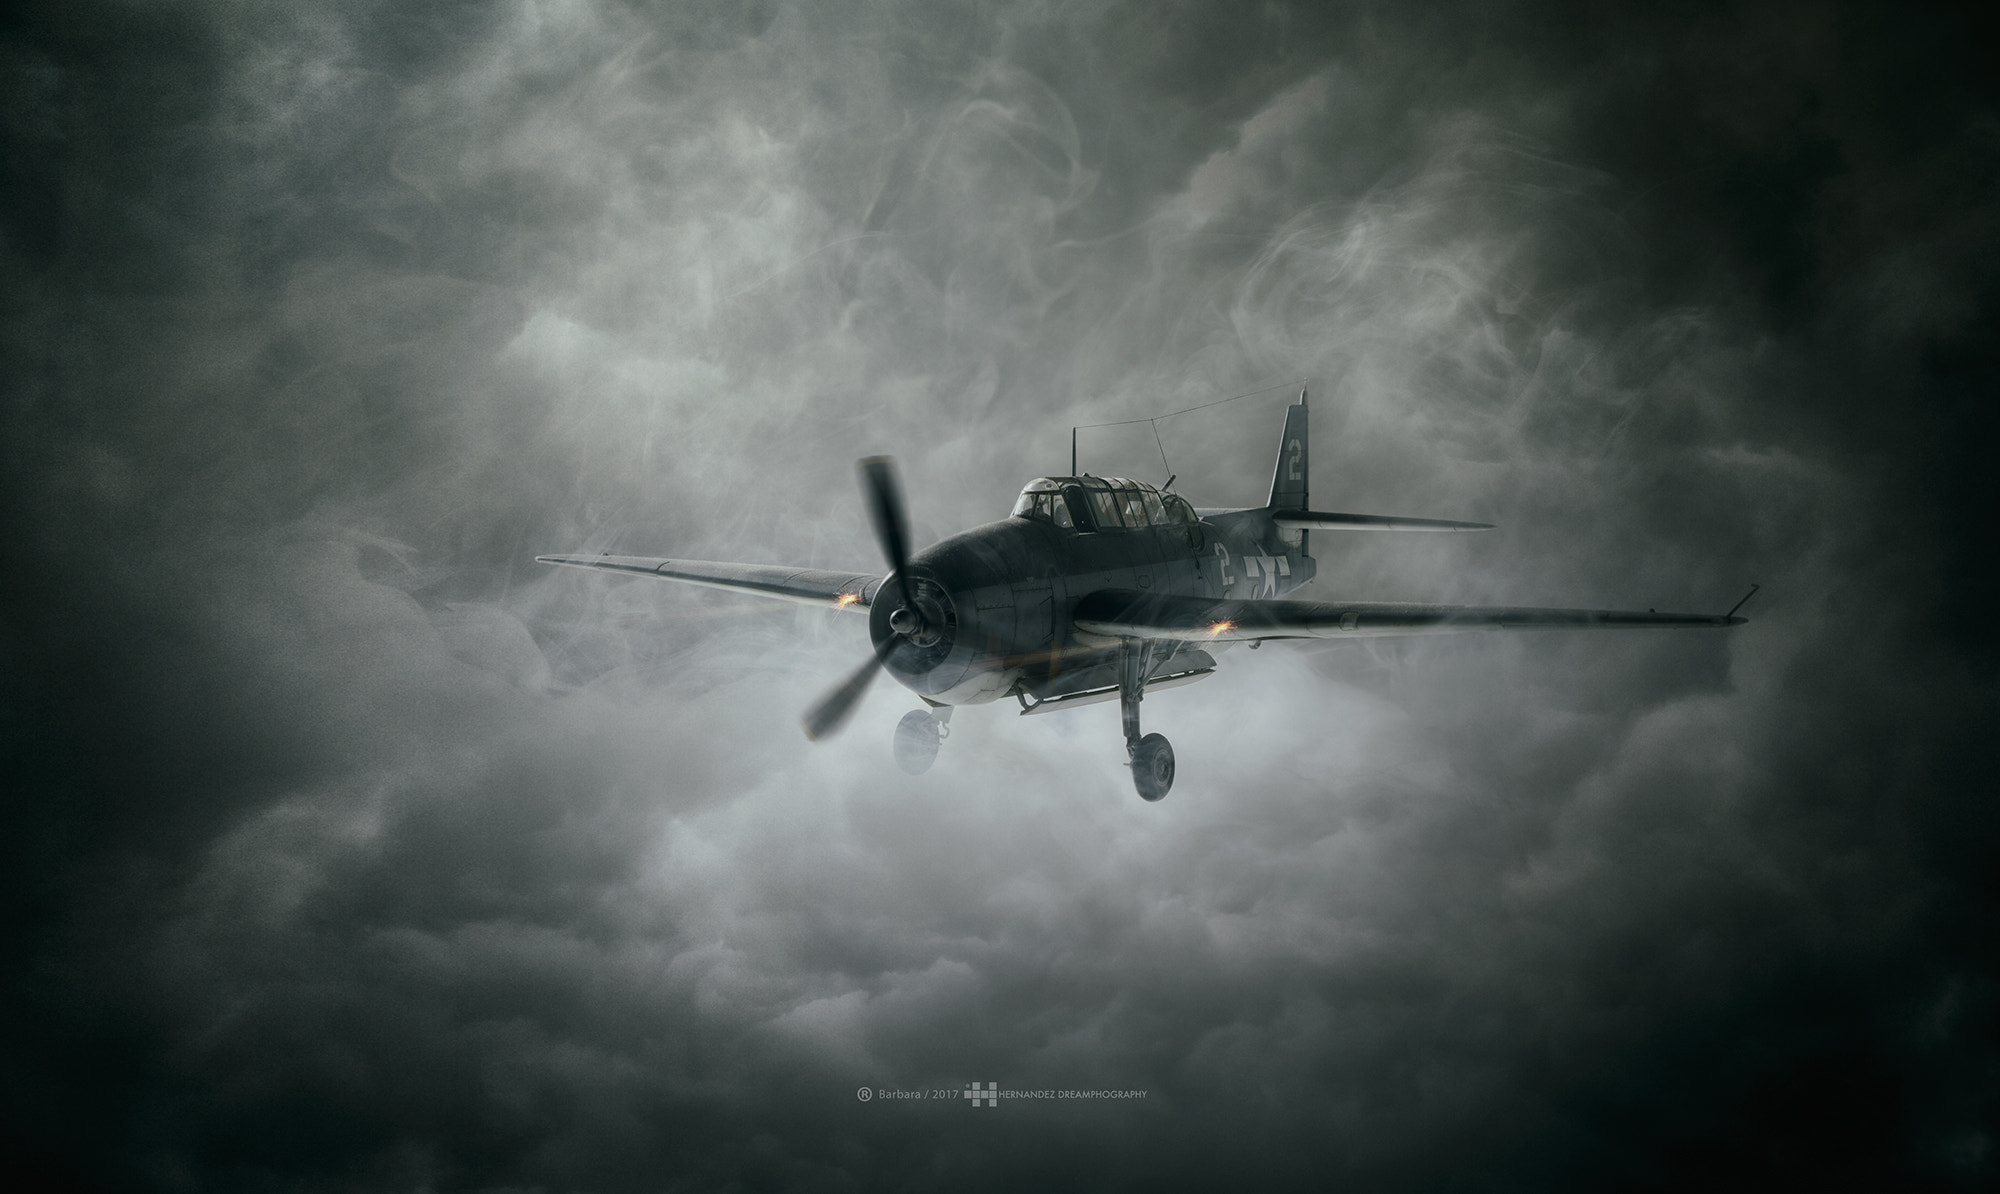 aircraft dark clouds hd